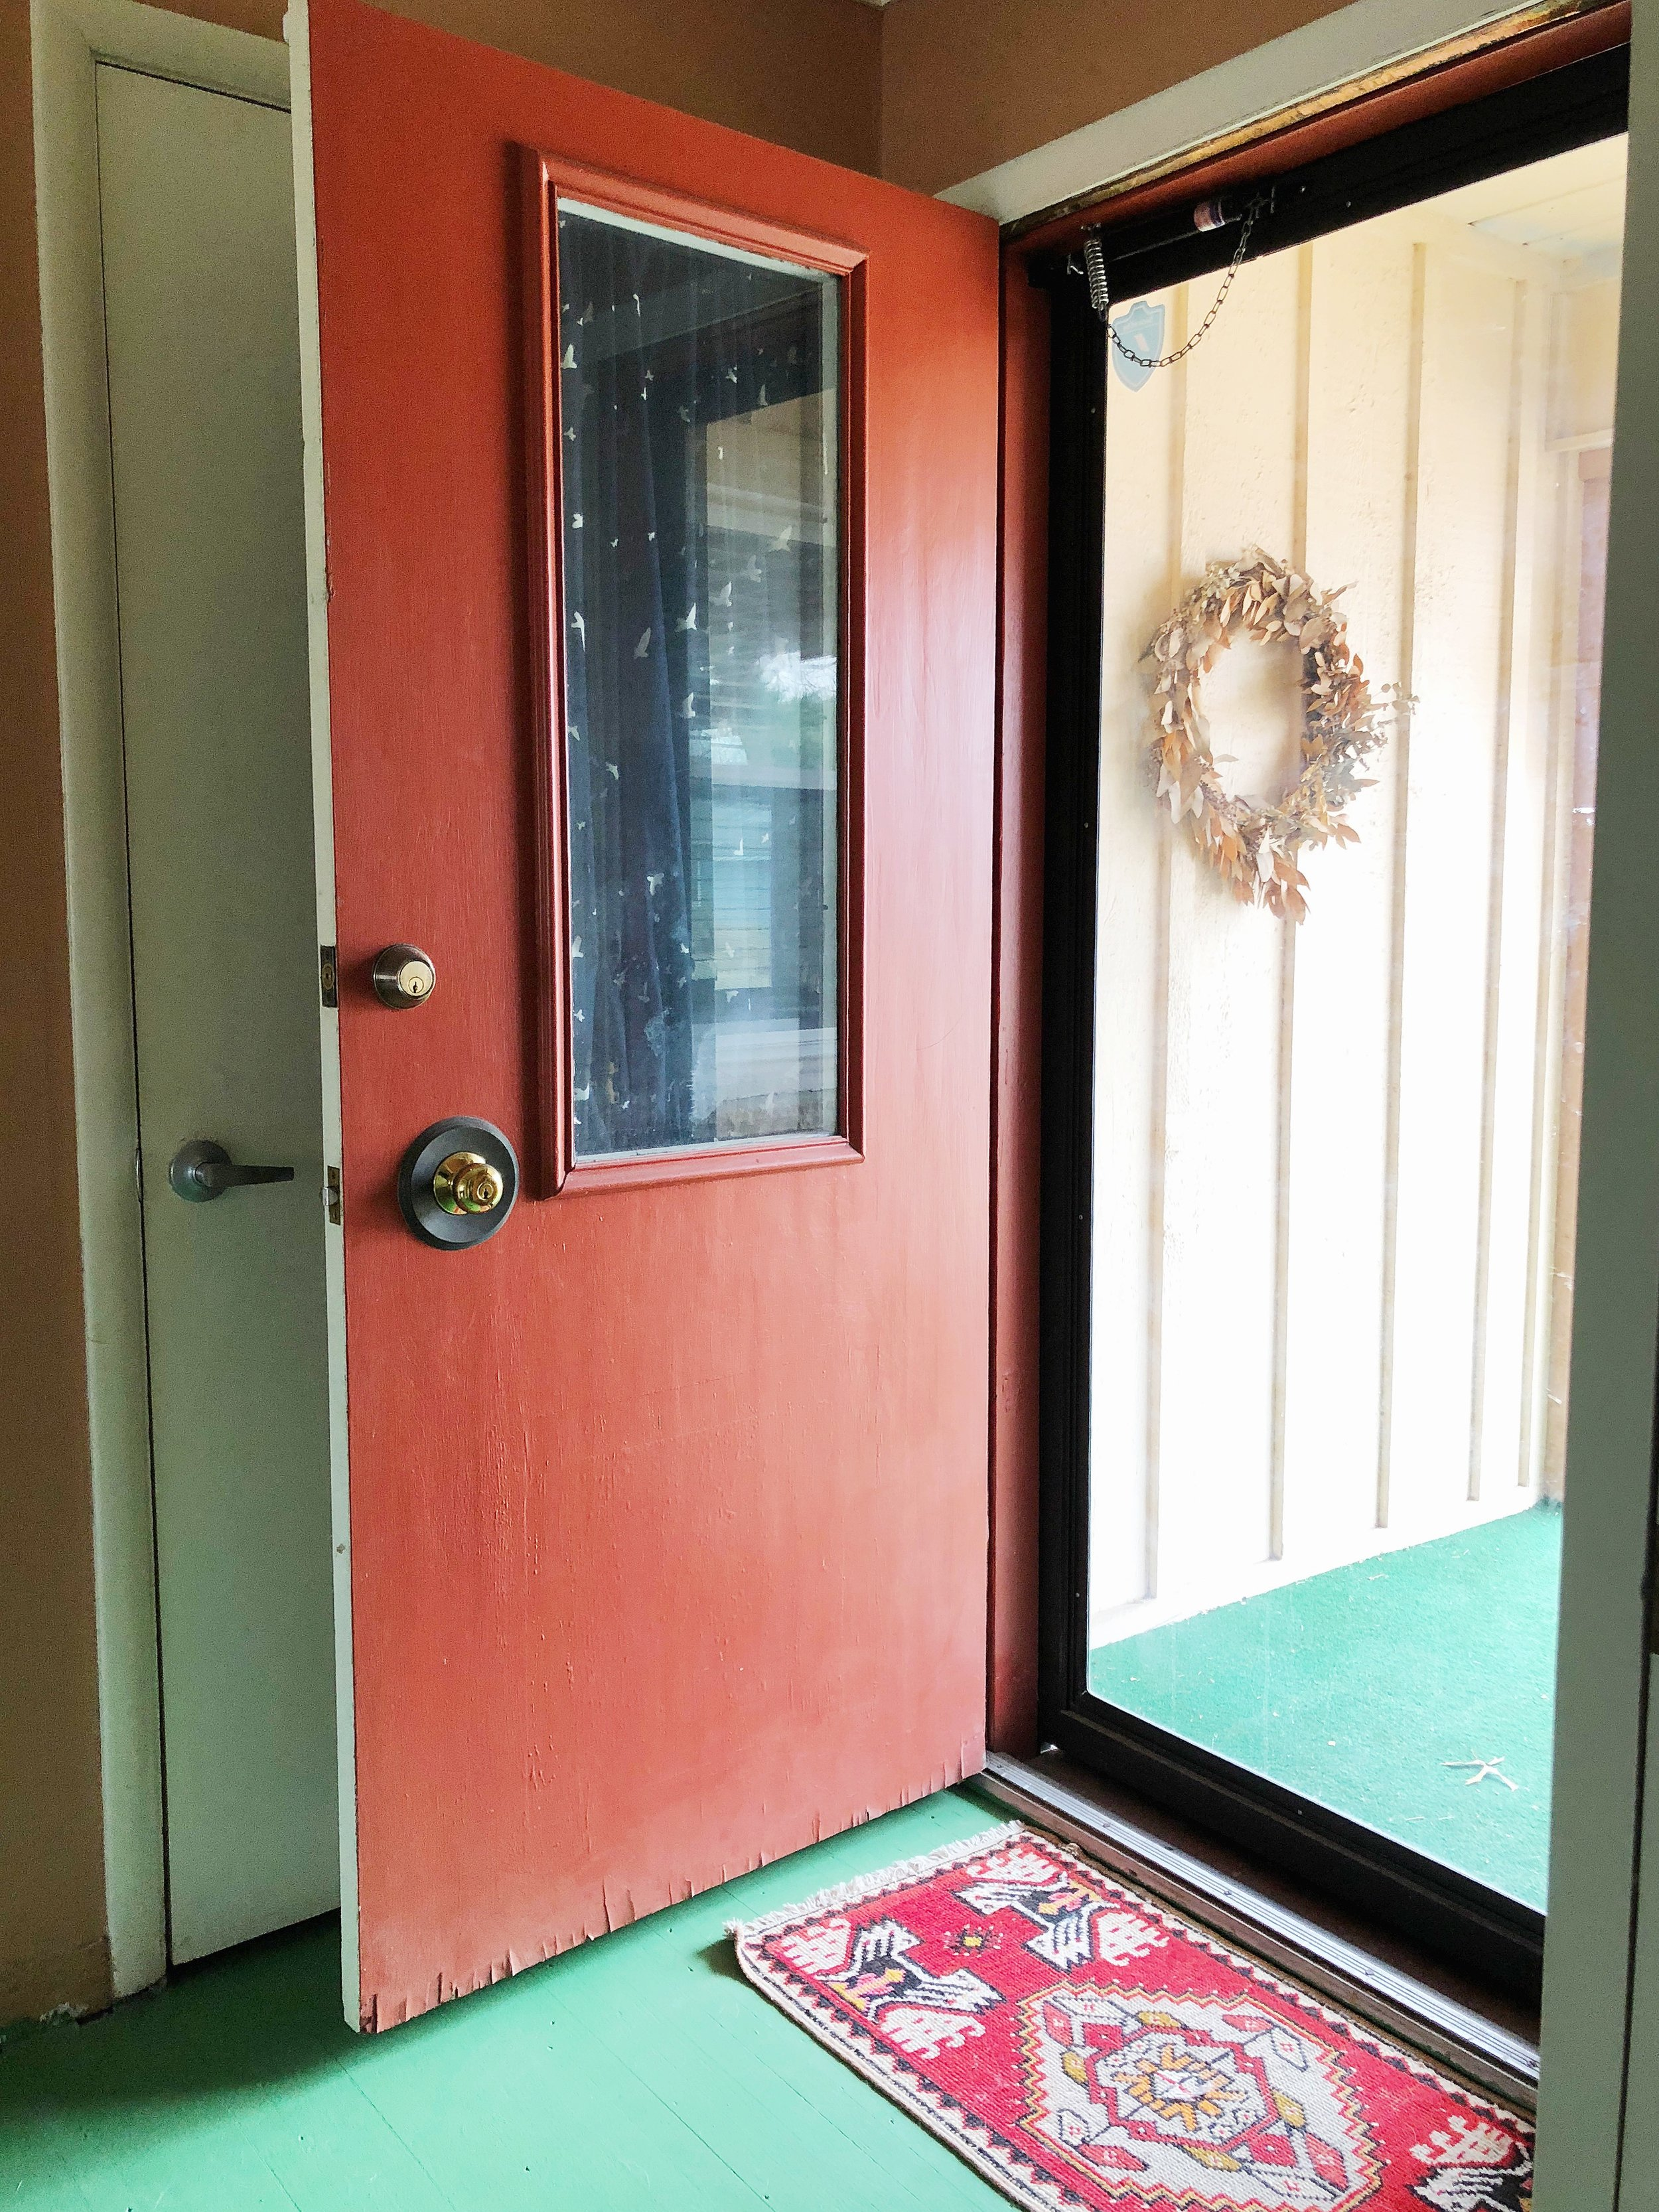 Clearly, we are drawn to red in our homes too. We both have red(ish) doors. Weird!